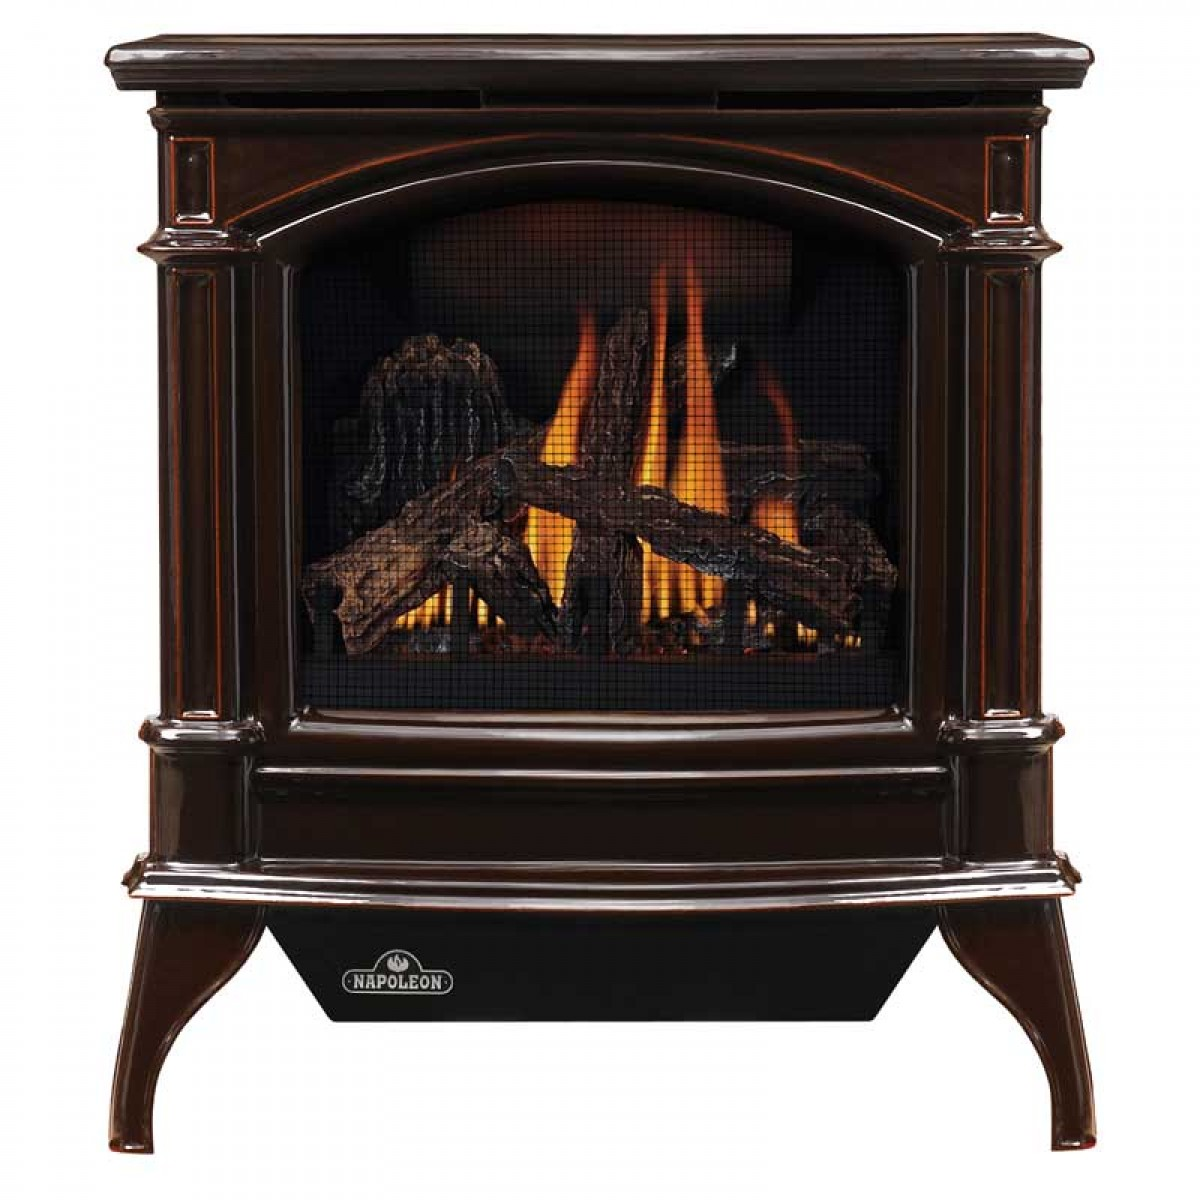 GVFS60-1PN Napoleon Cast-Iron Gas Stove, Propane, Majolica Brown by Napoleon